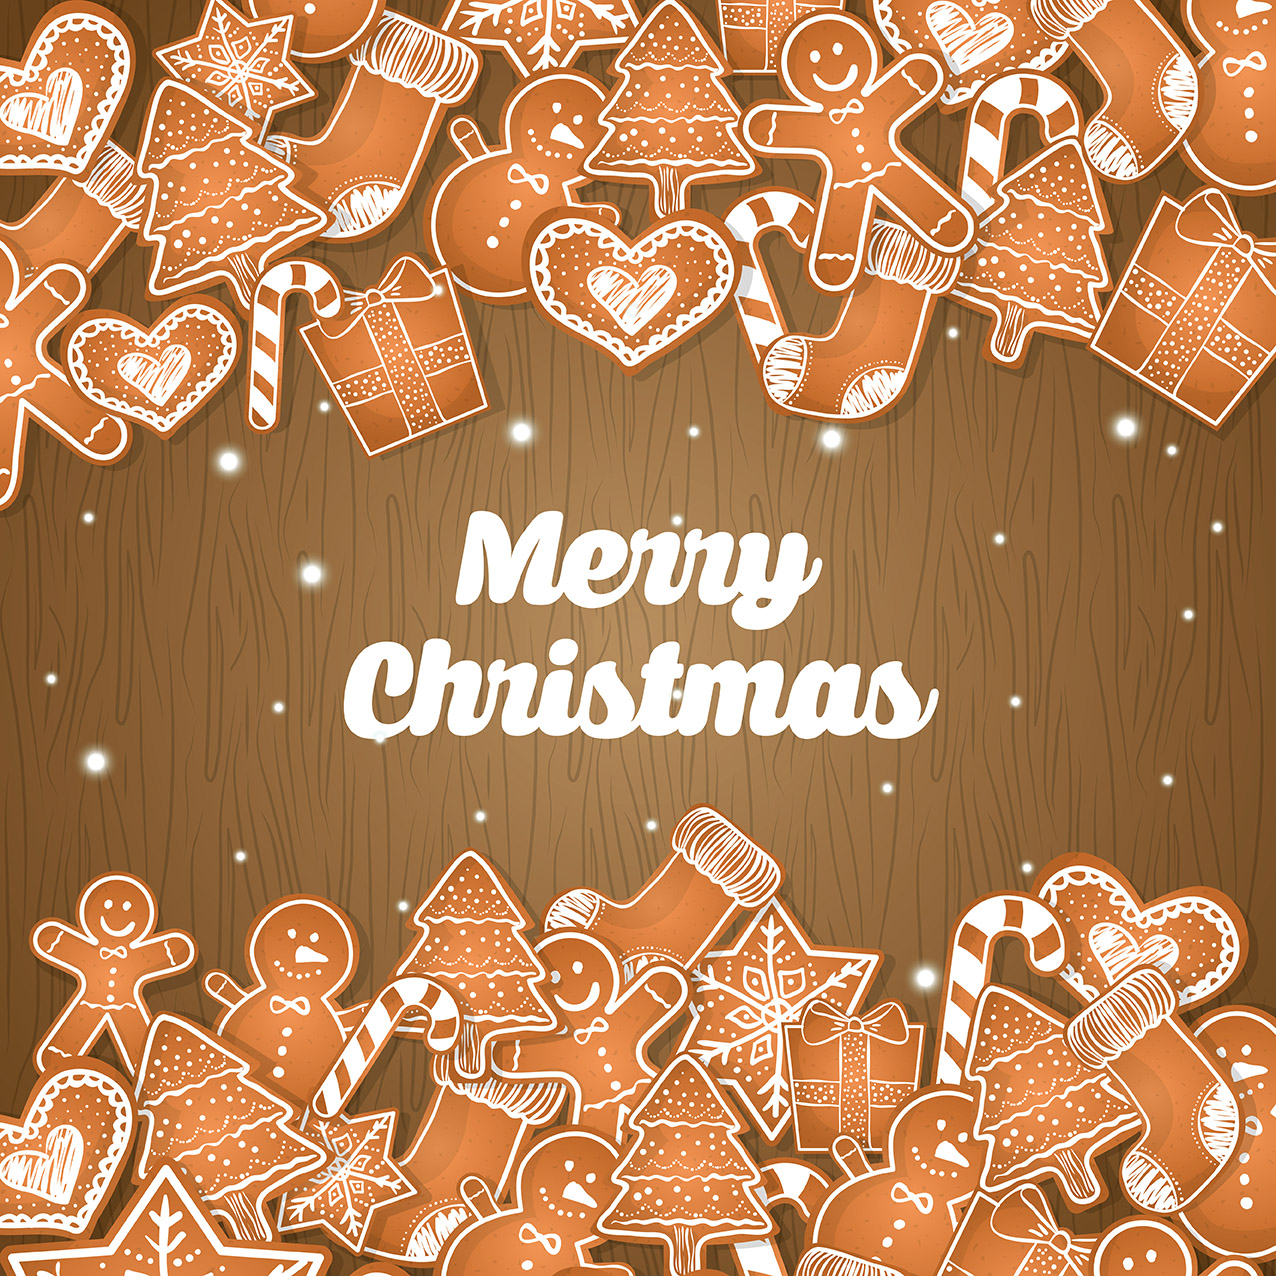 merry christmas images hd romantic